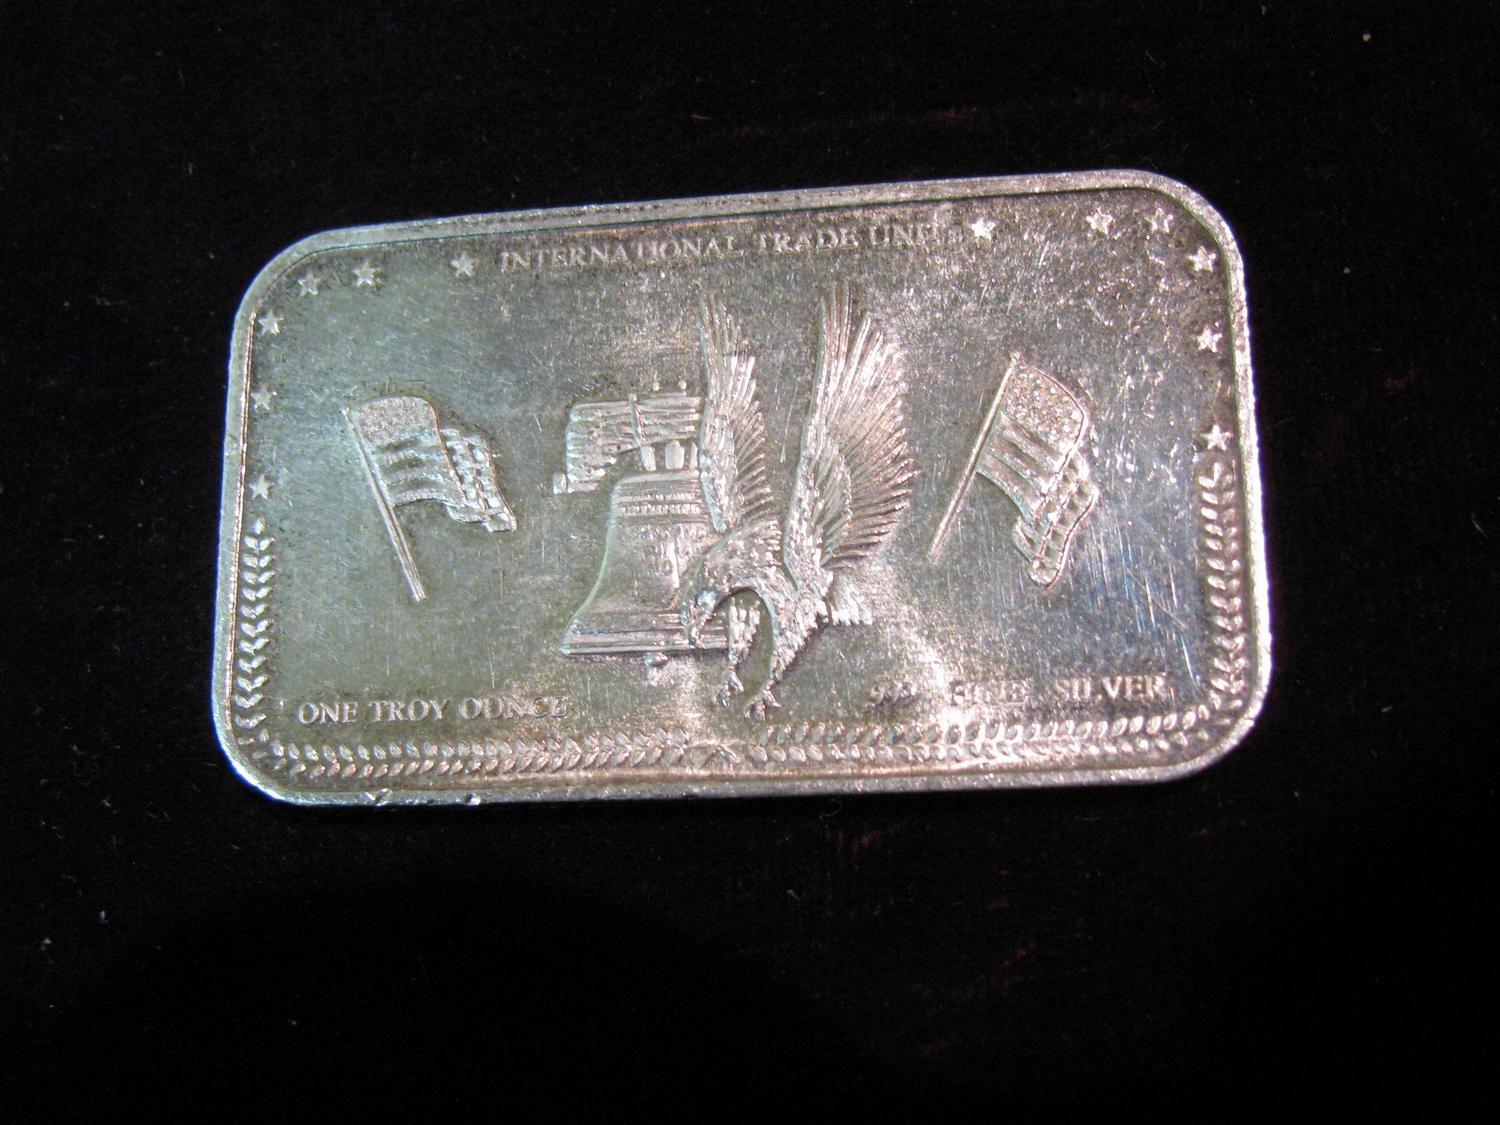 Image 1 1487 International Trade Unit One Troy Ounce 999 Fine Silver